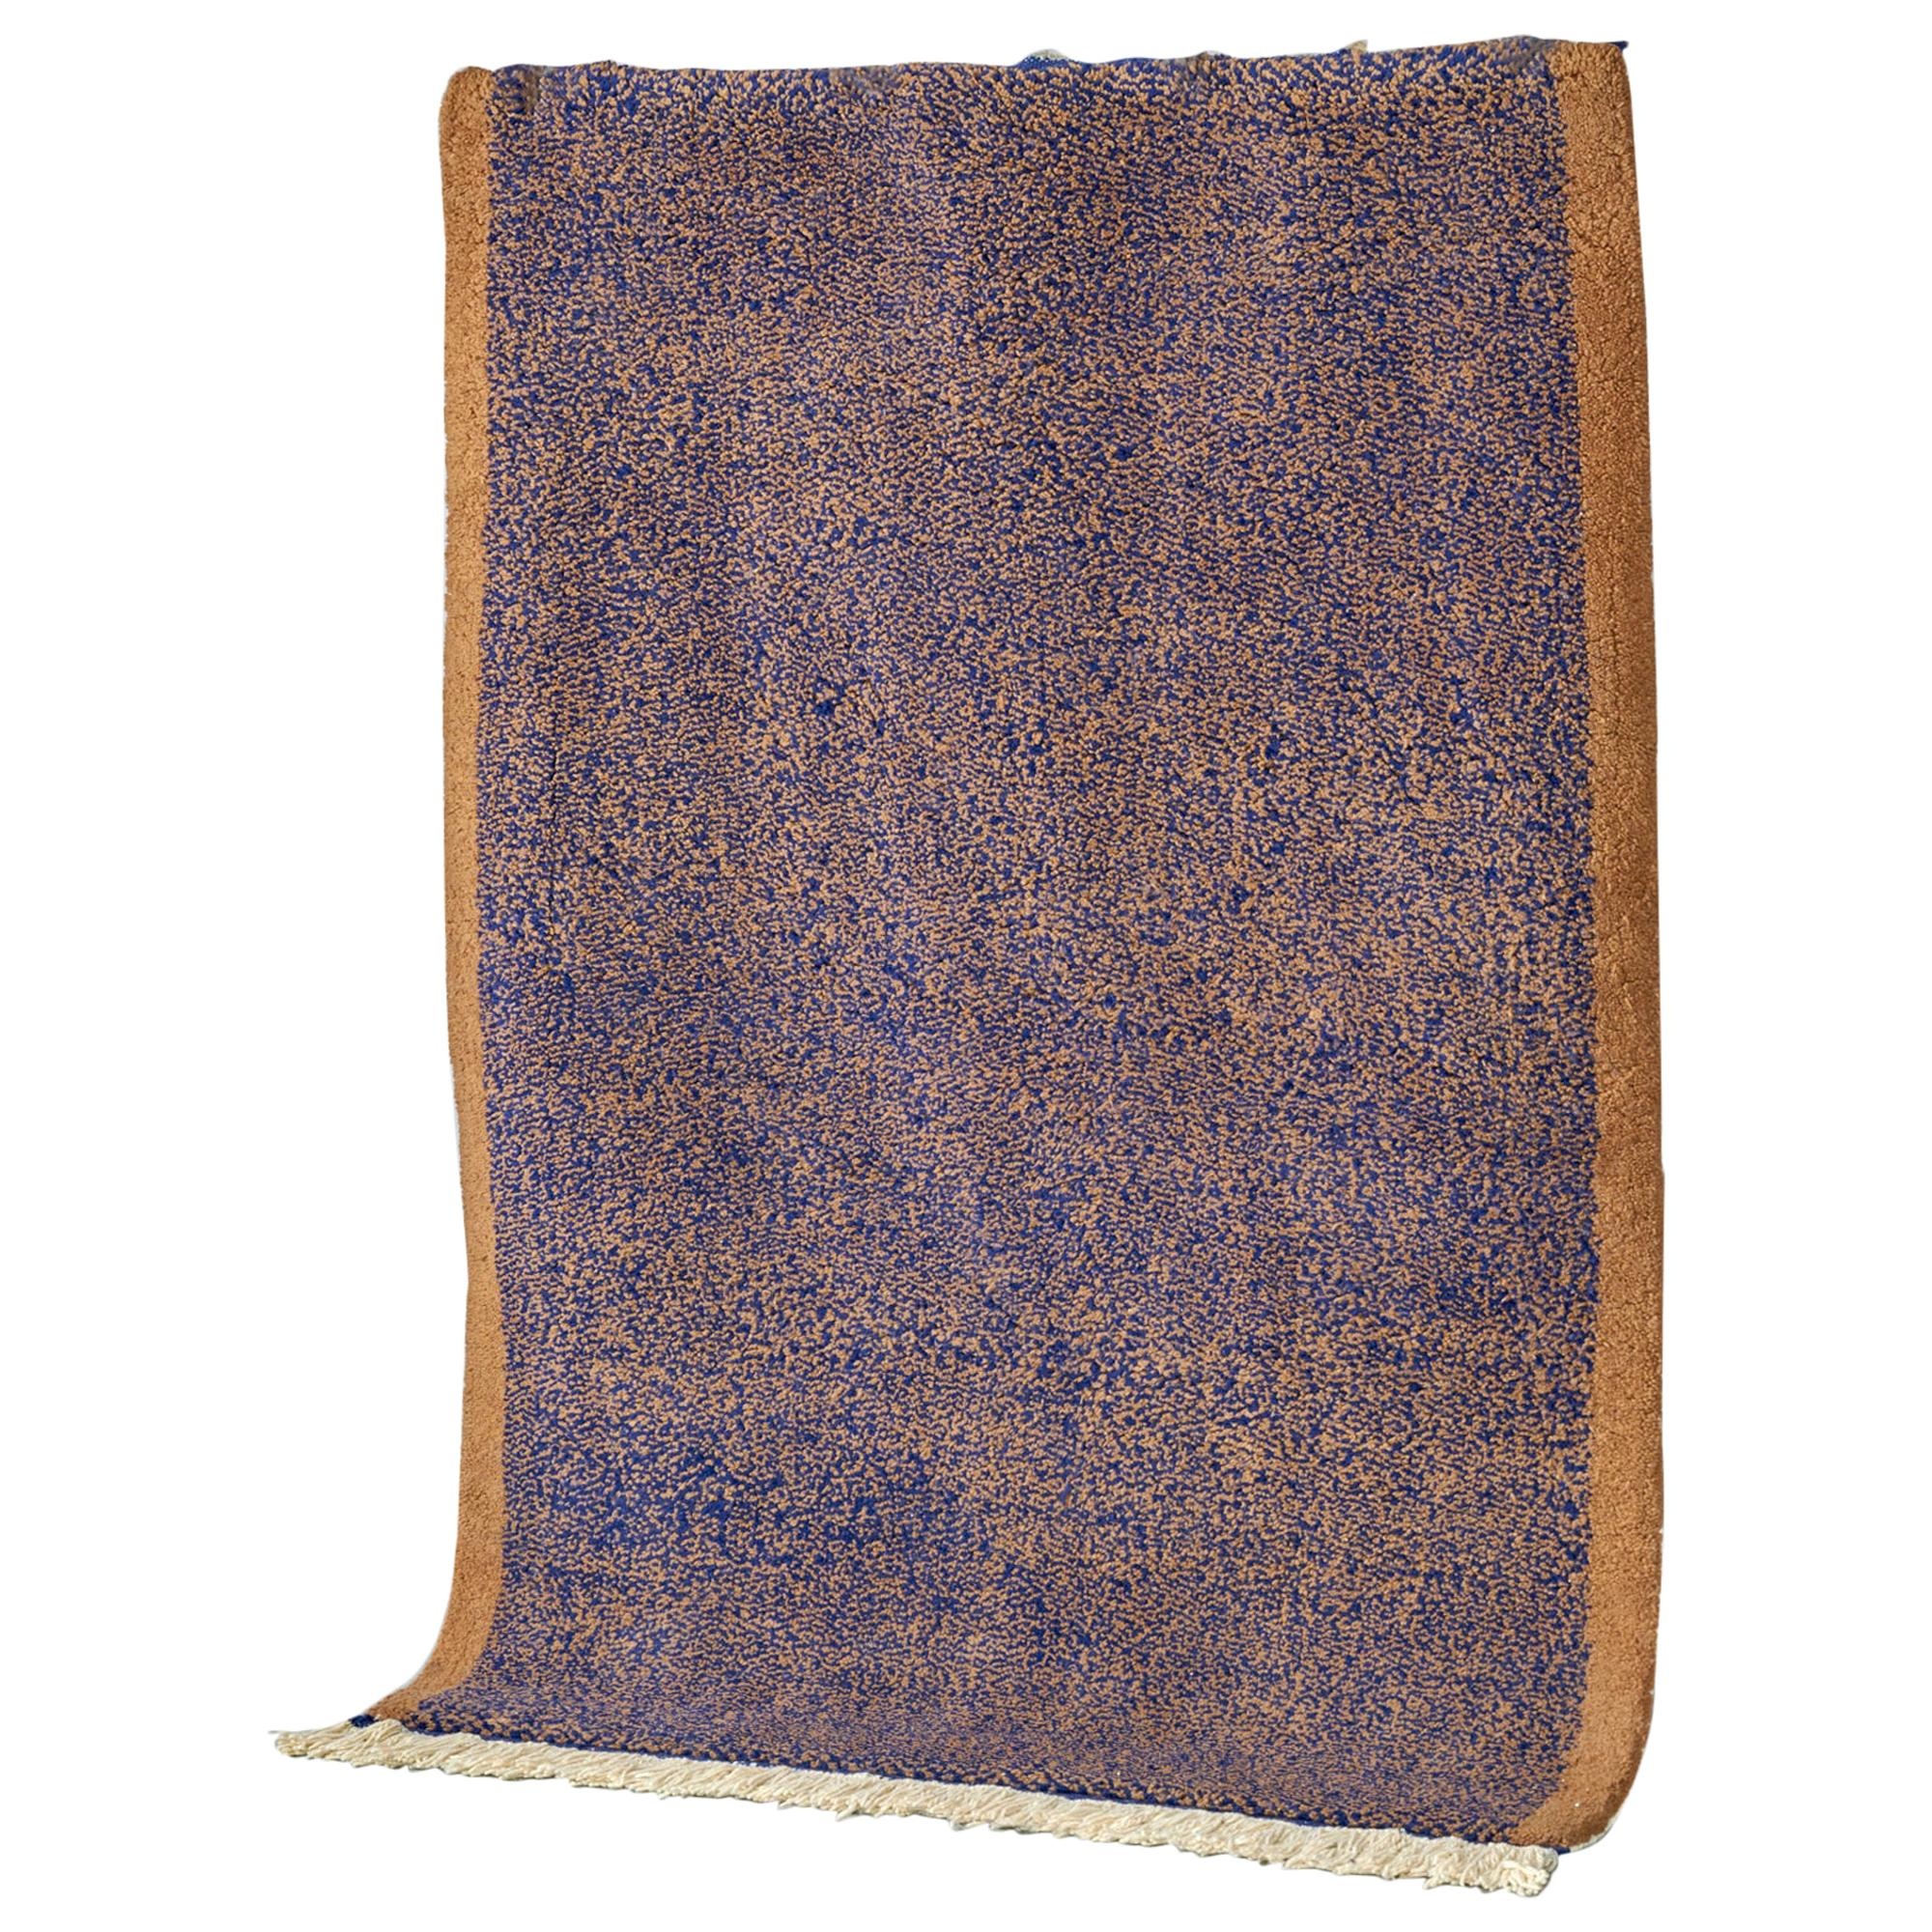 Moroccan Hand Knotted Wool Rug by Julie Richoz, 10x14ft, in Stock